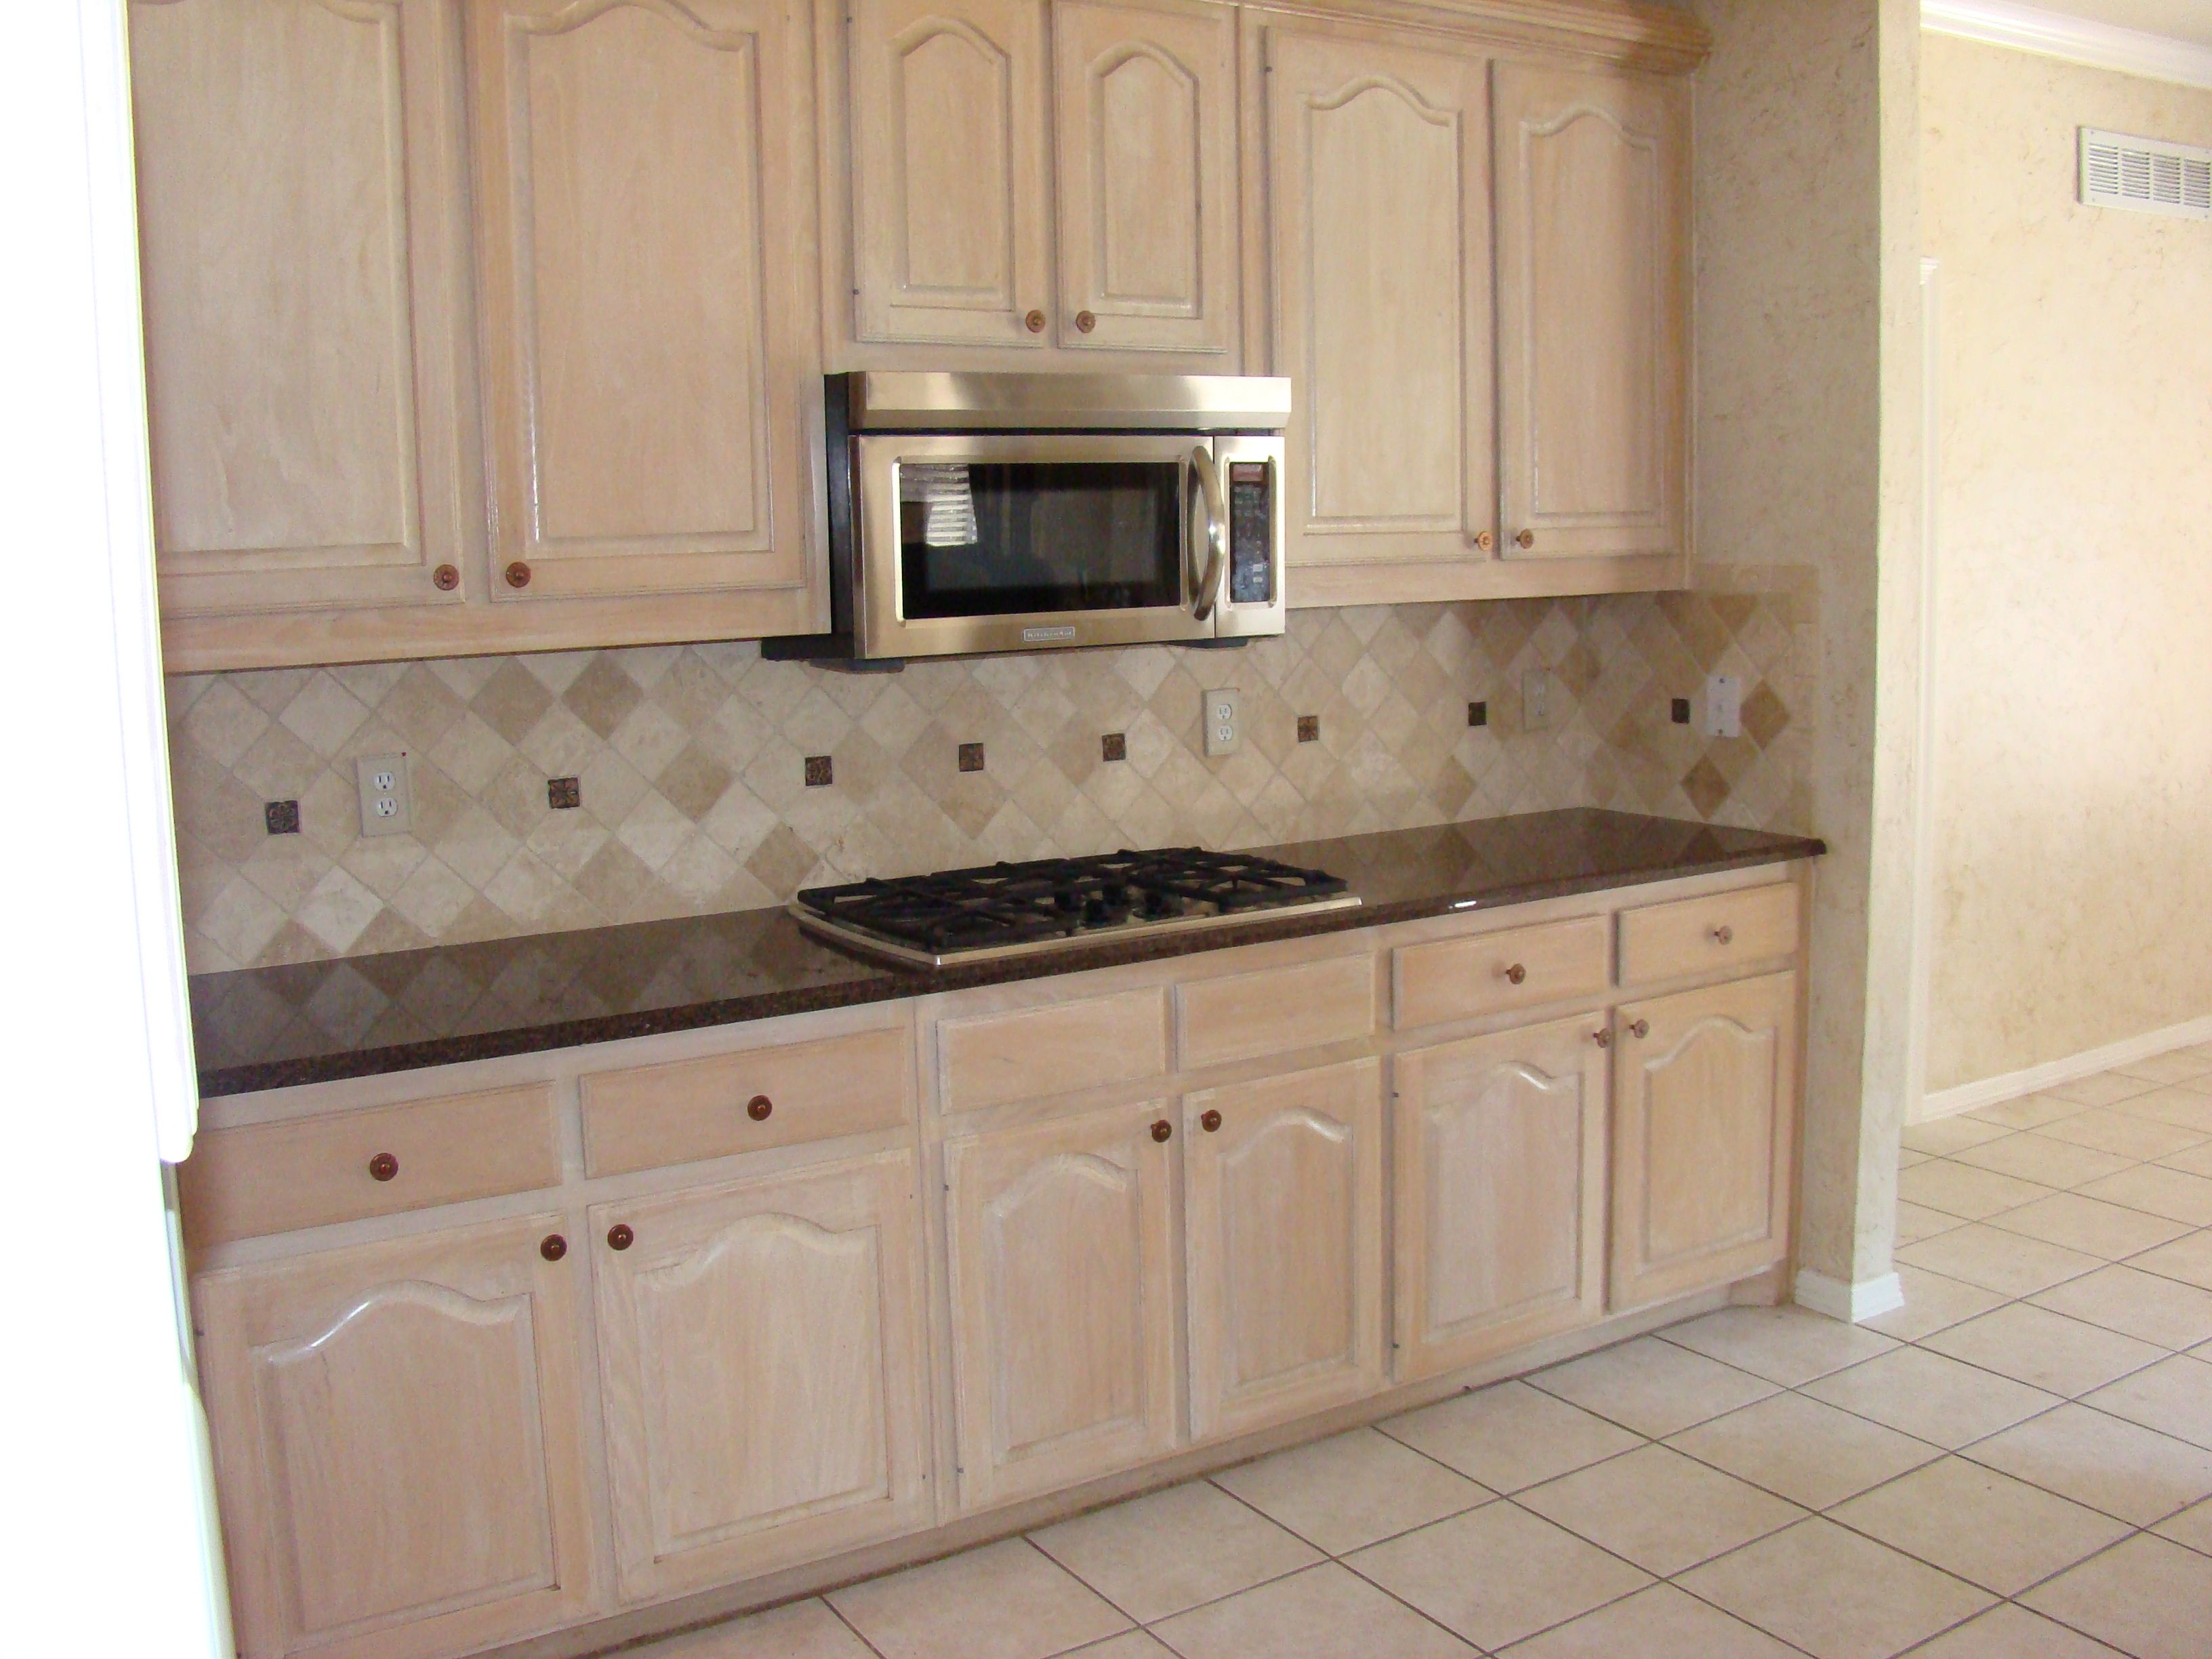 Best Places To Buy Kitchen Cabinets Kitchens With Pickled Oak Cabinets Kitchen Remodel